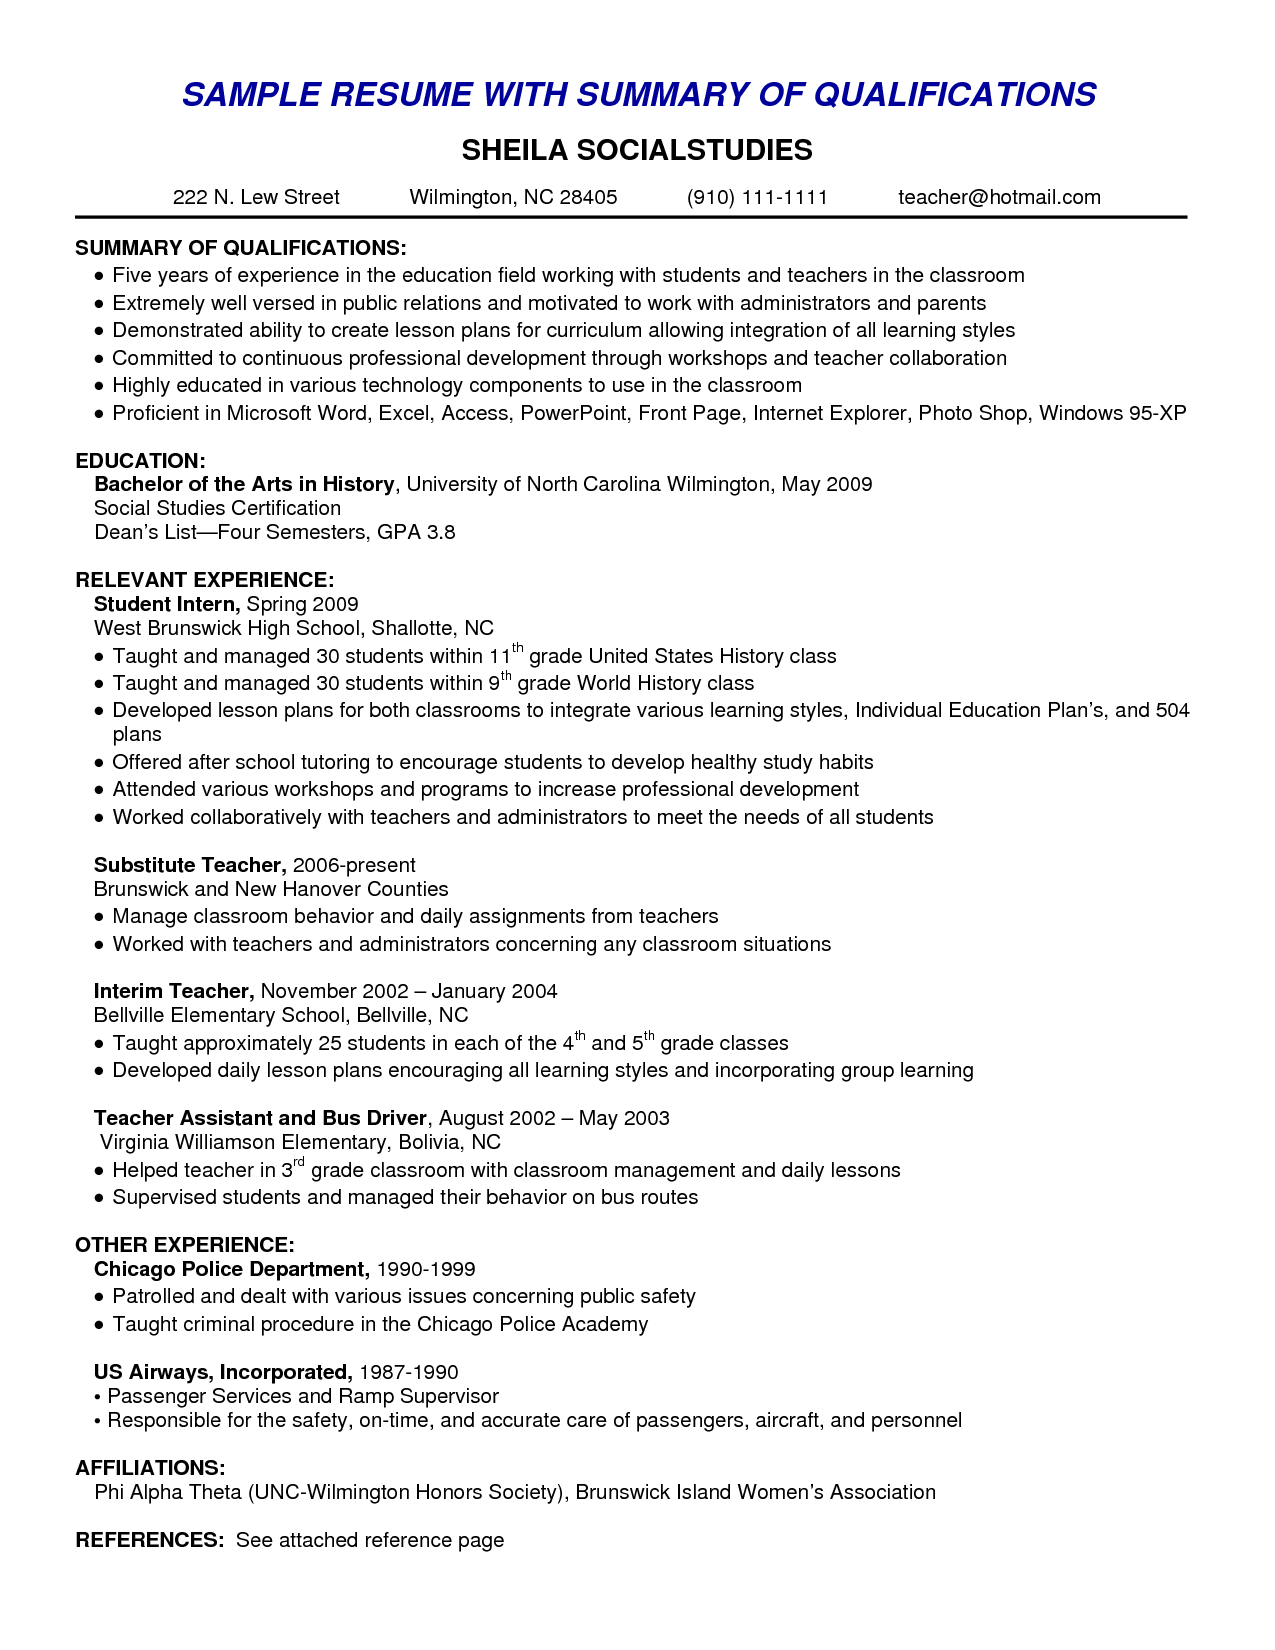 Free Sample Resumes 9 Professional Summary Examples Samplebusinessresume